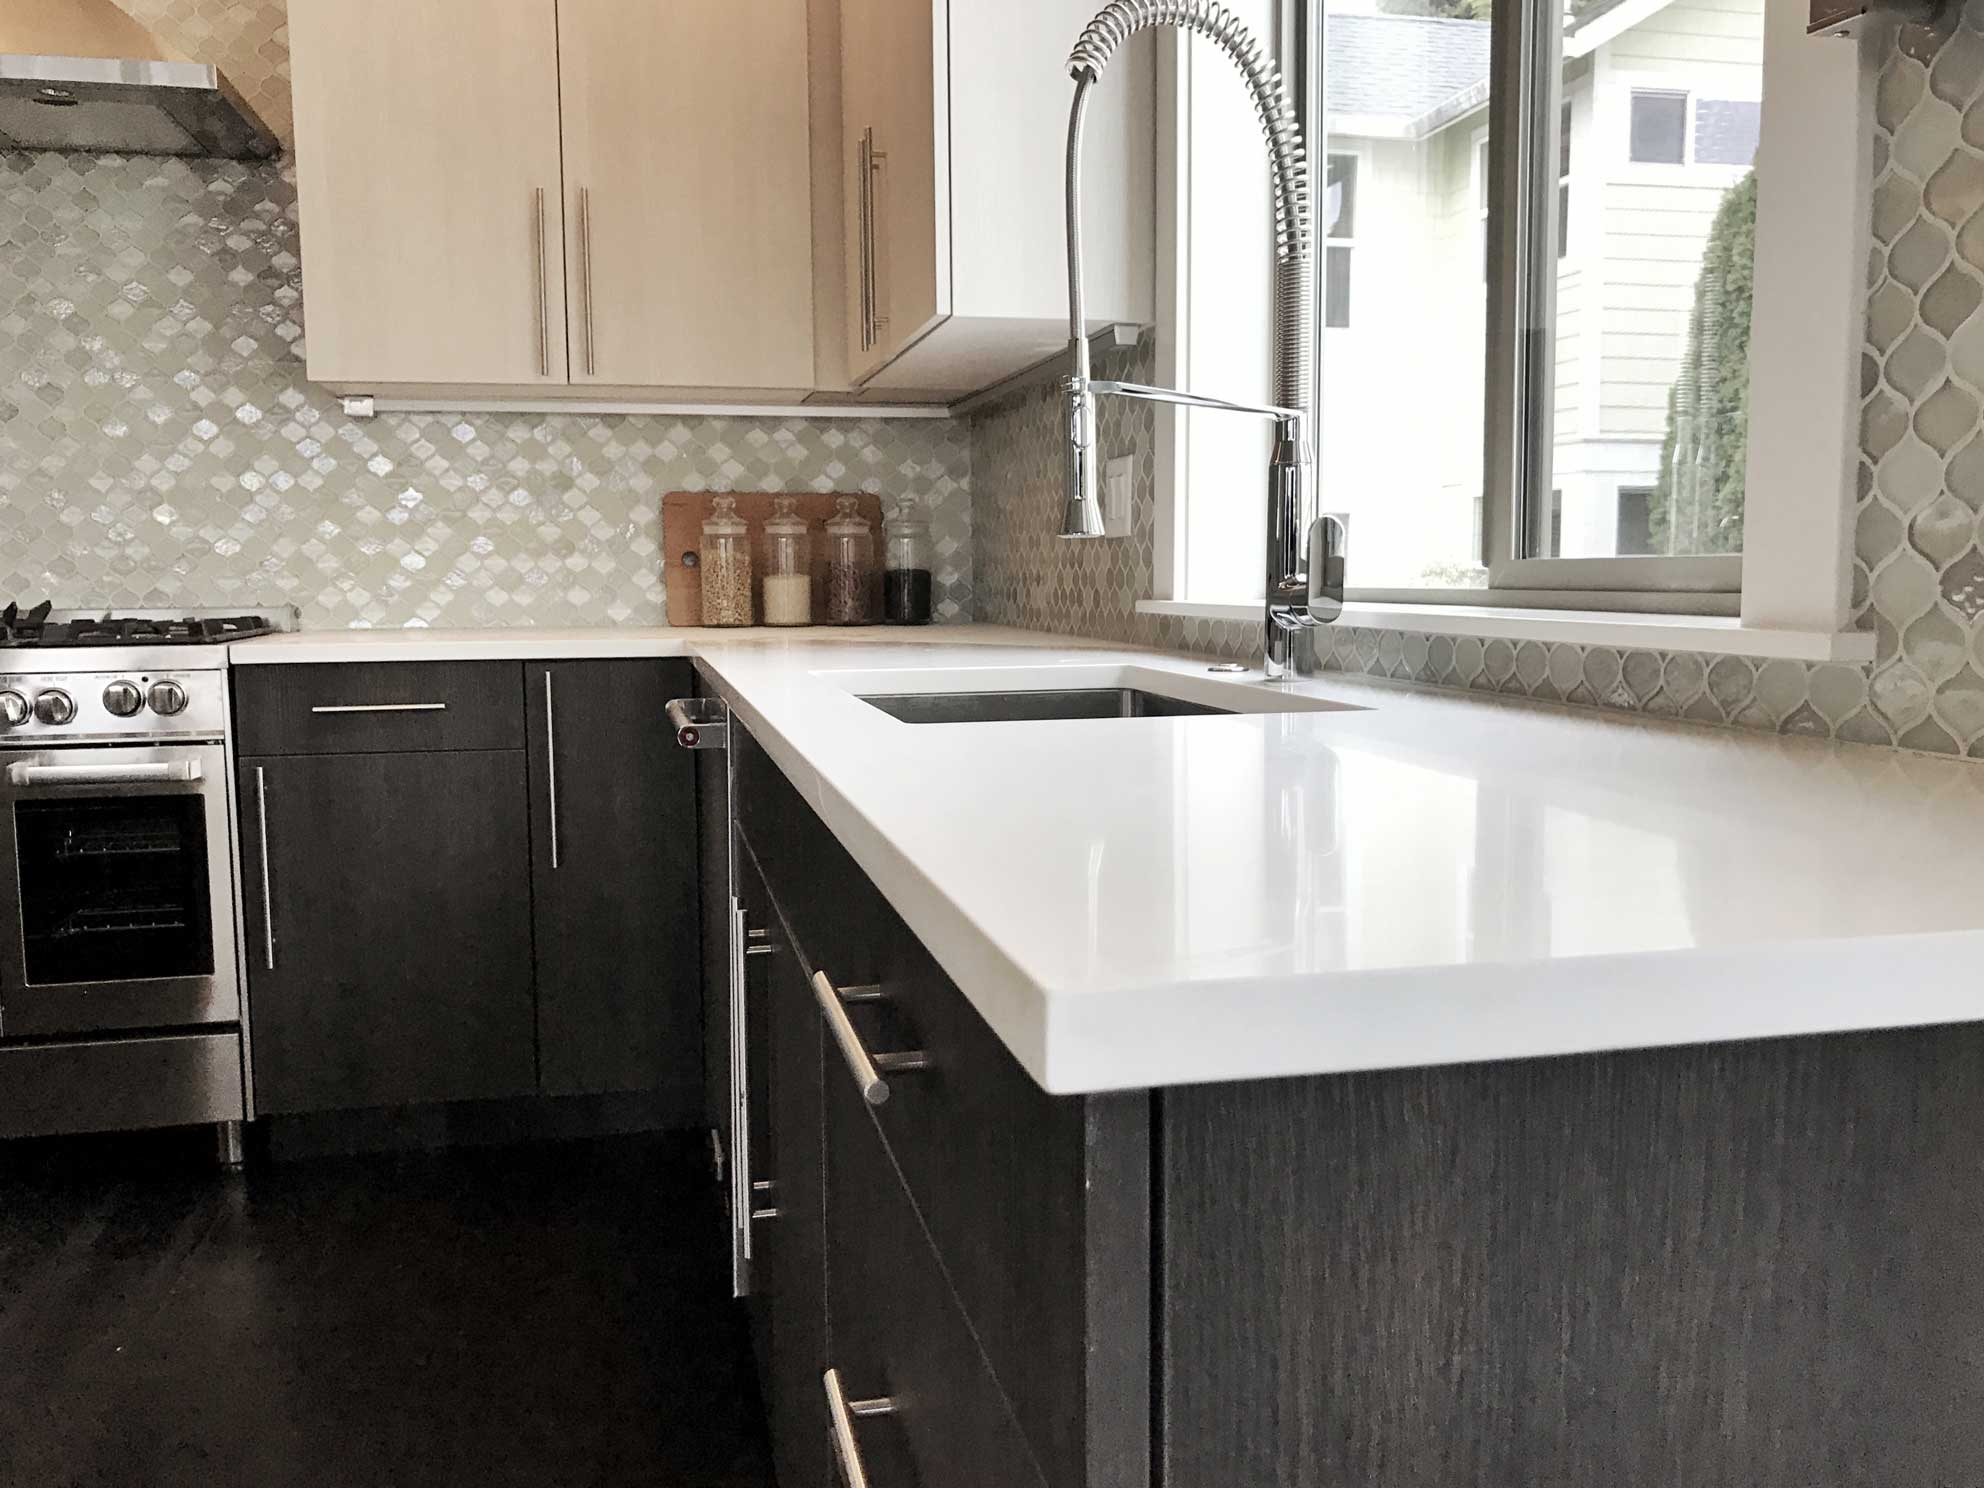 Full Kitchen Remodel with Stone Countertops by Divine Hardwood & Stone